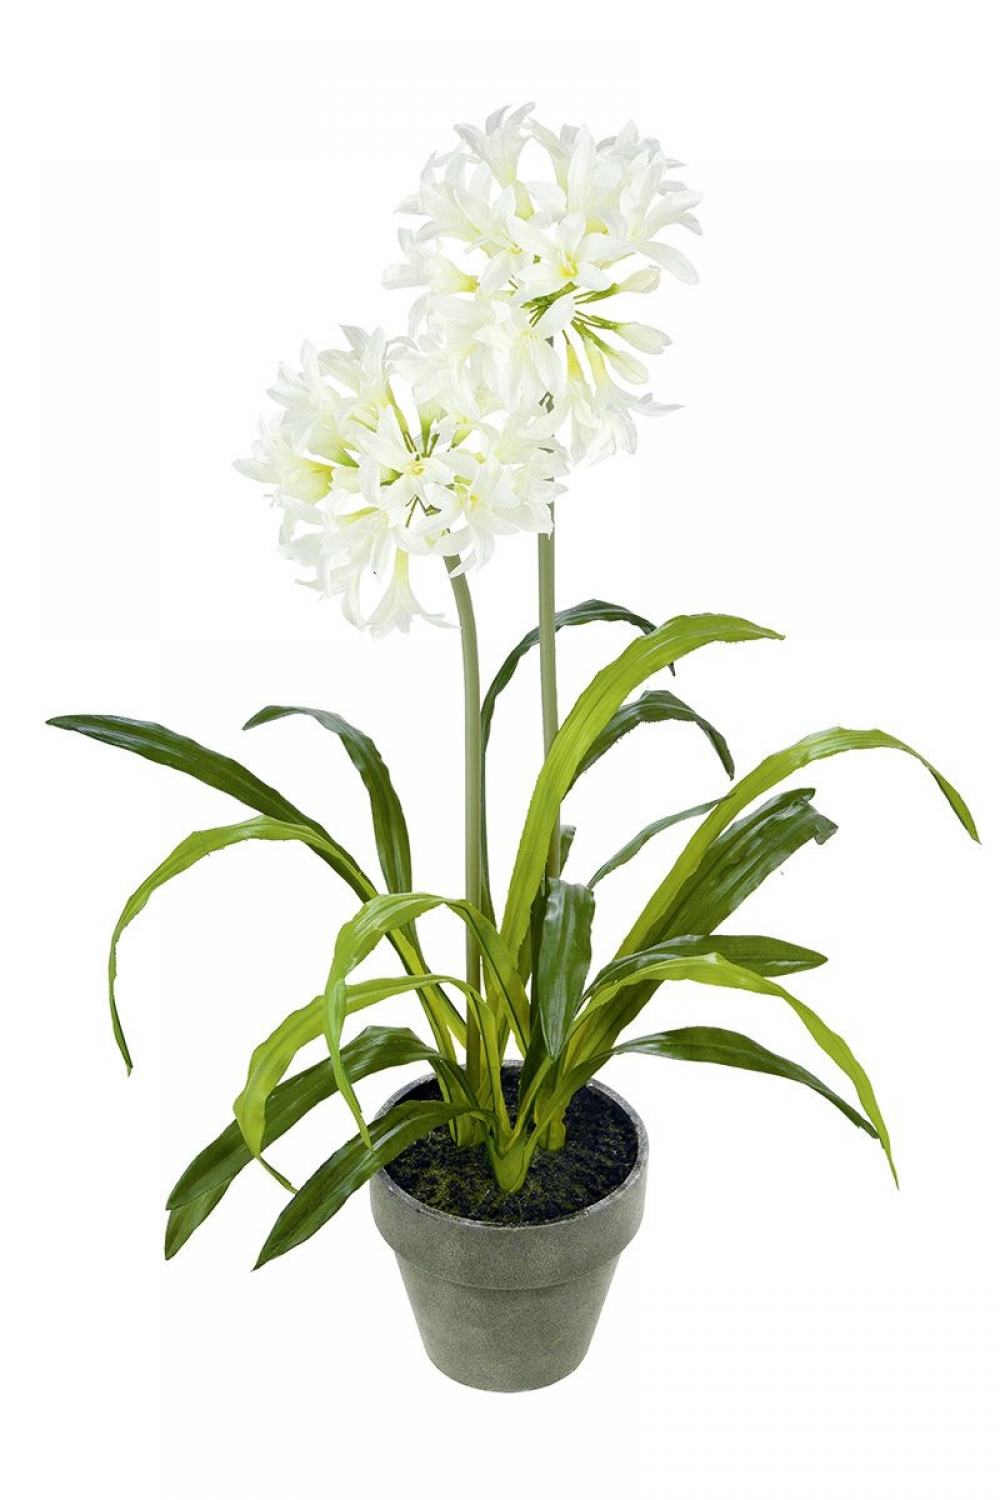 Flori de Agapanthus artificiale in ghiveci gri H38cm imagine 2021 insignis.ro